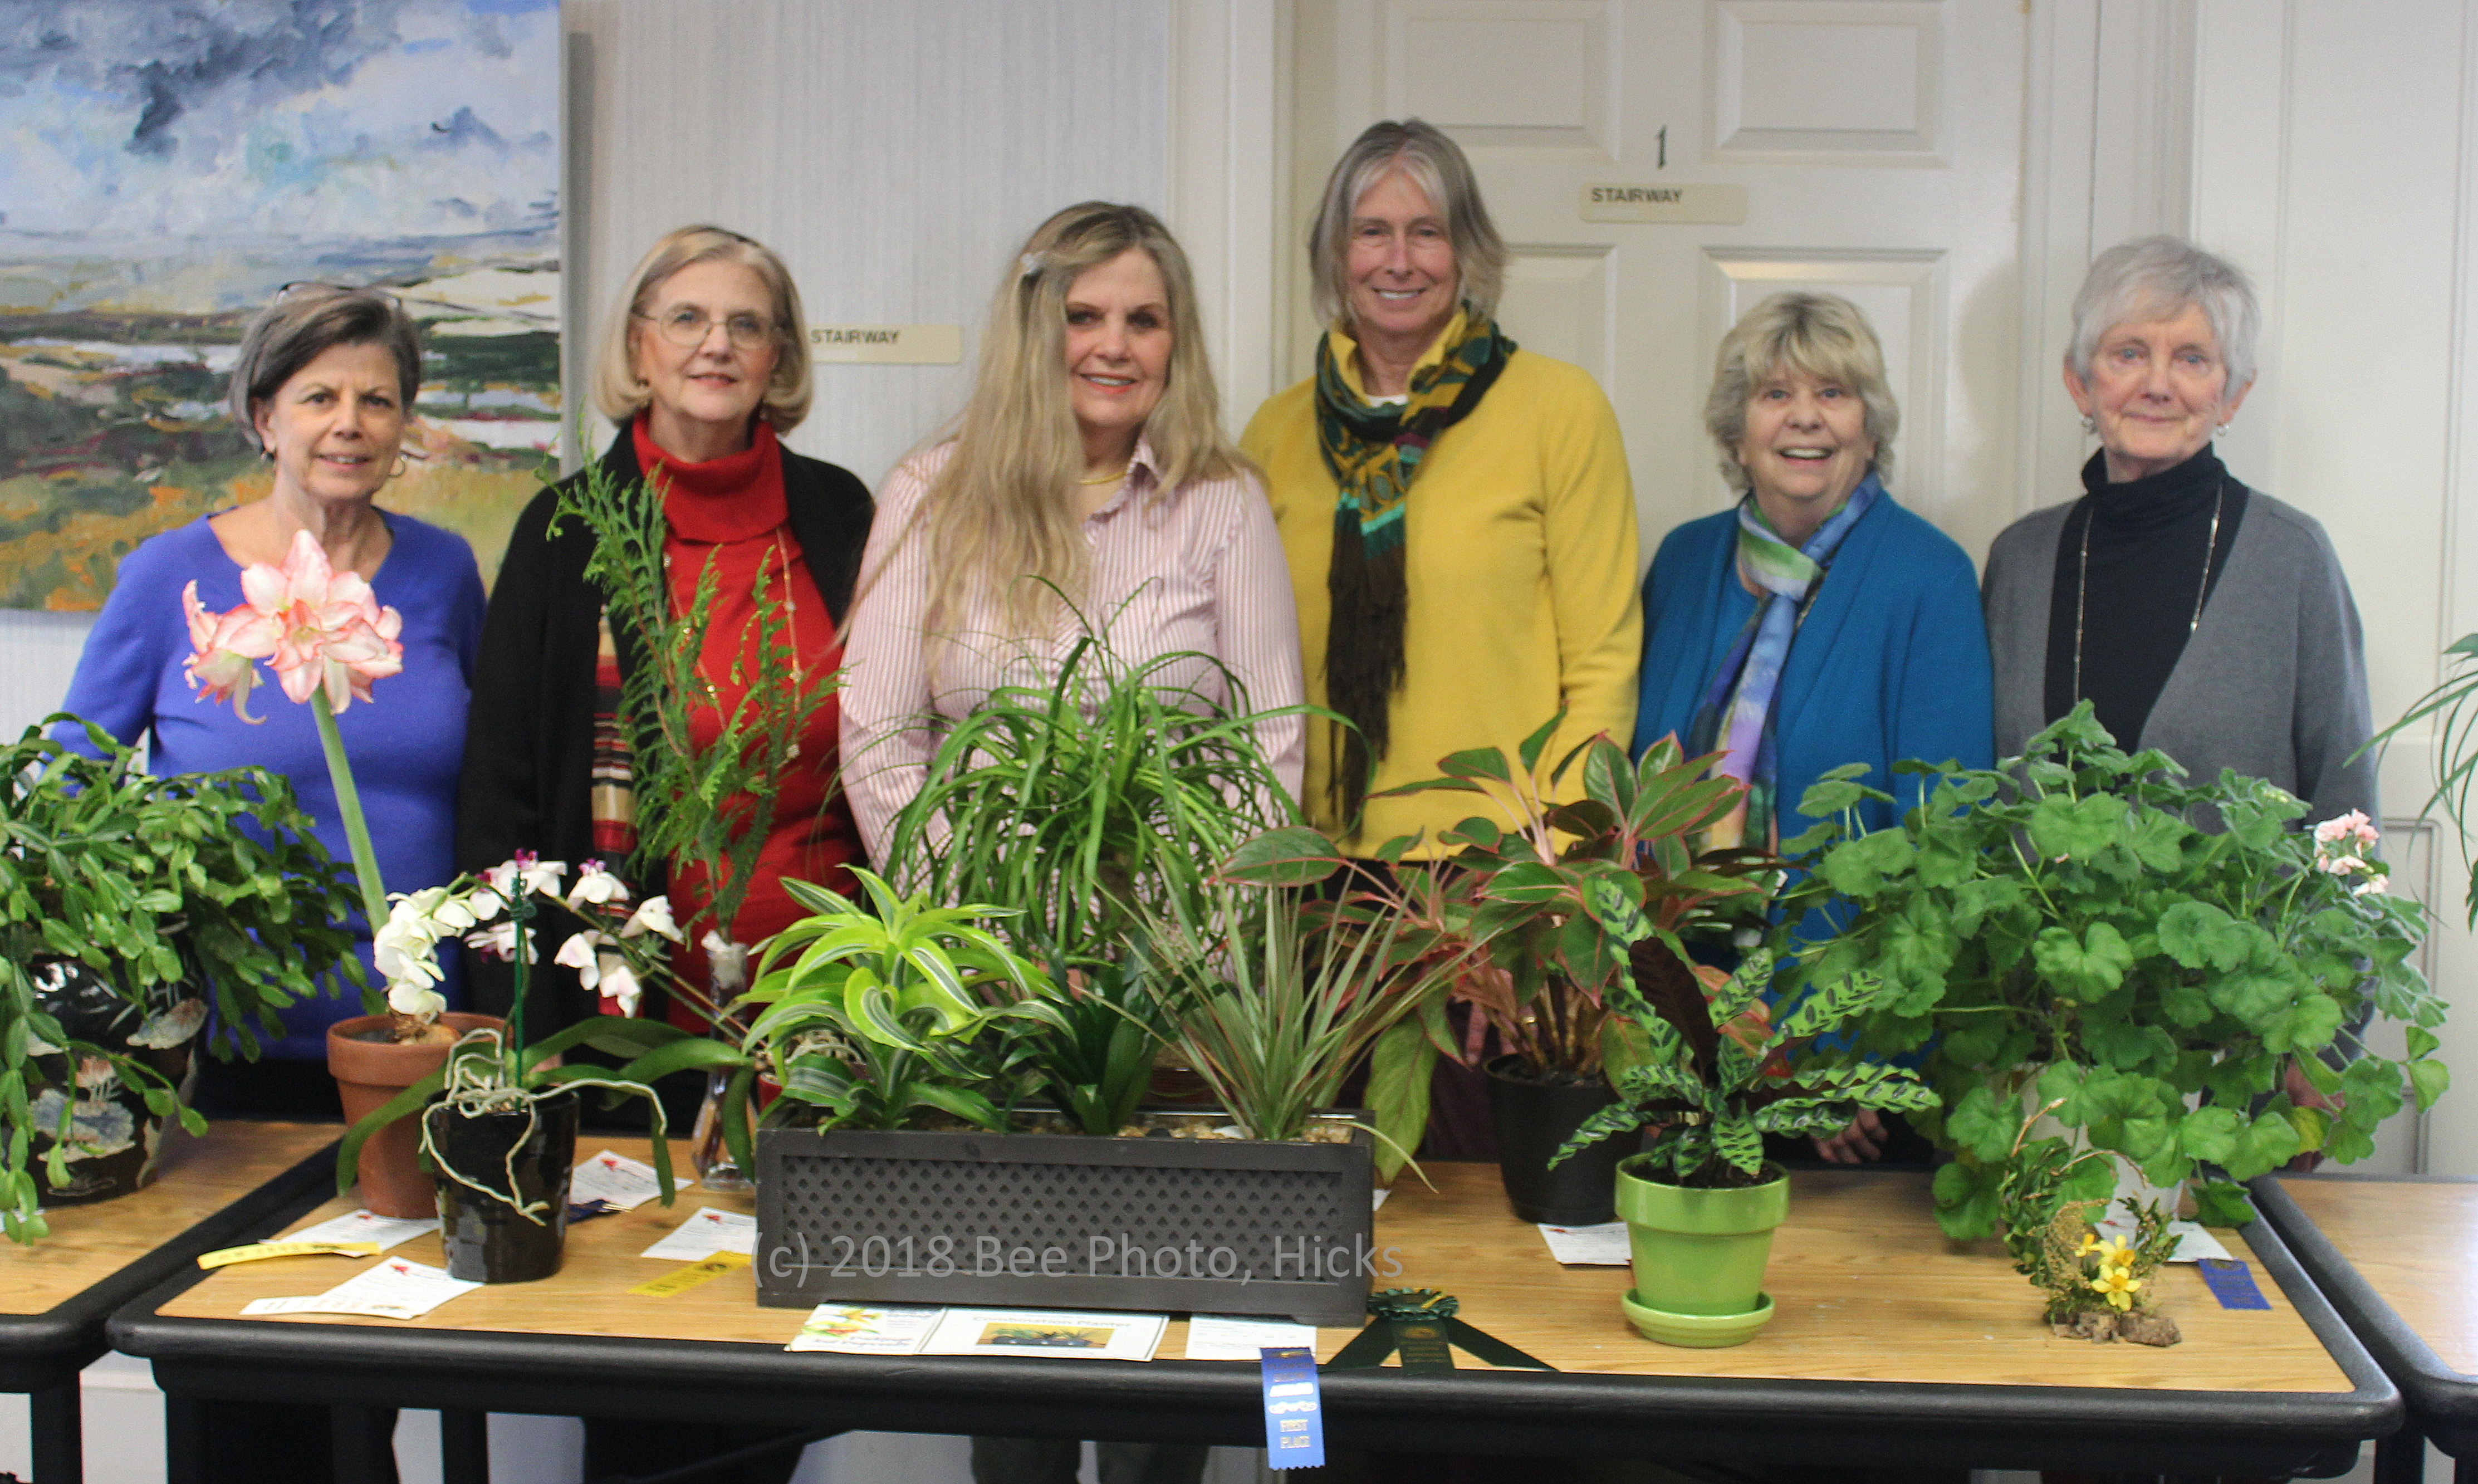 Garden Club S Appearance At State Flower Show Very Successful The